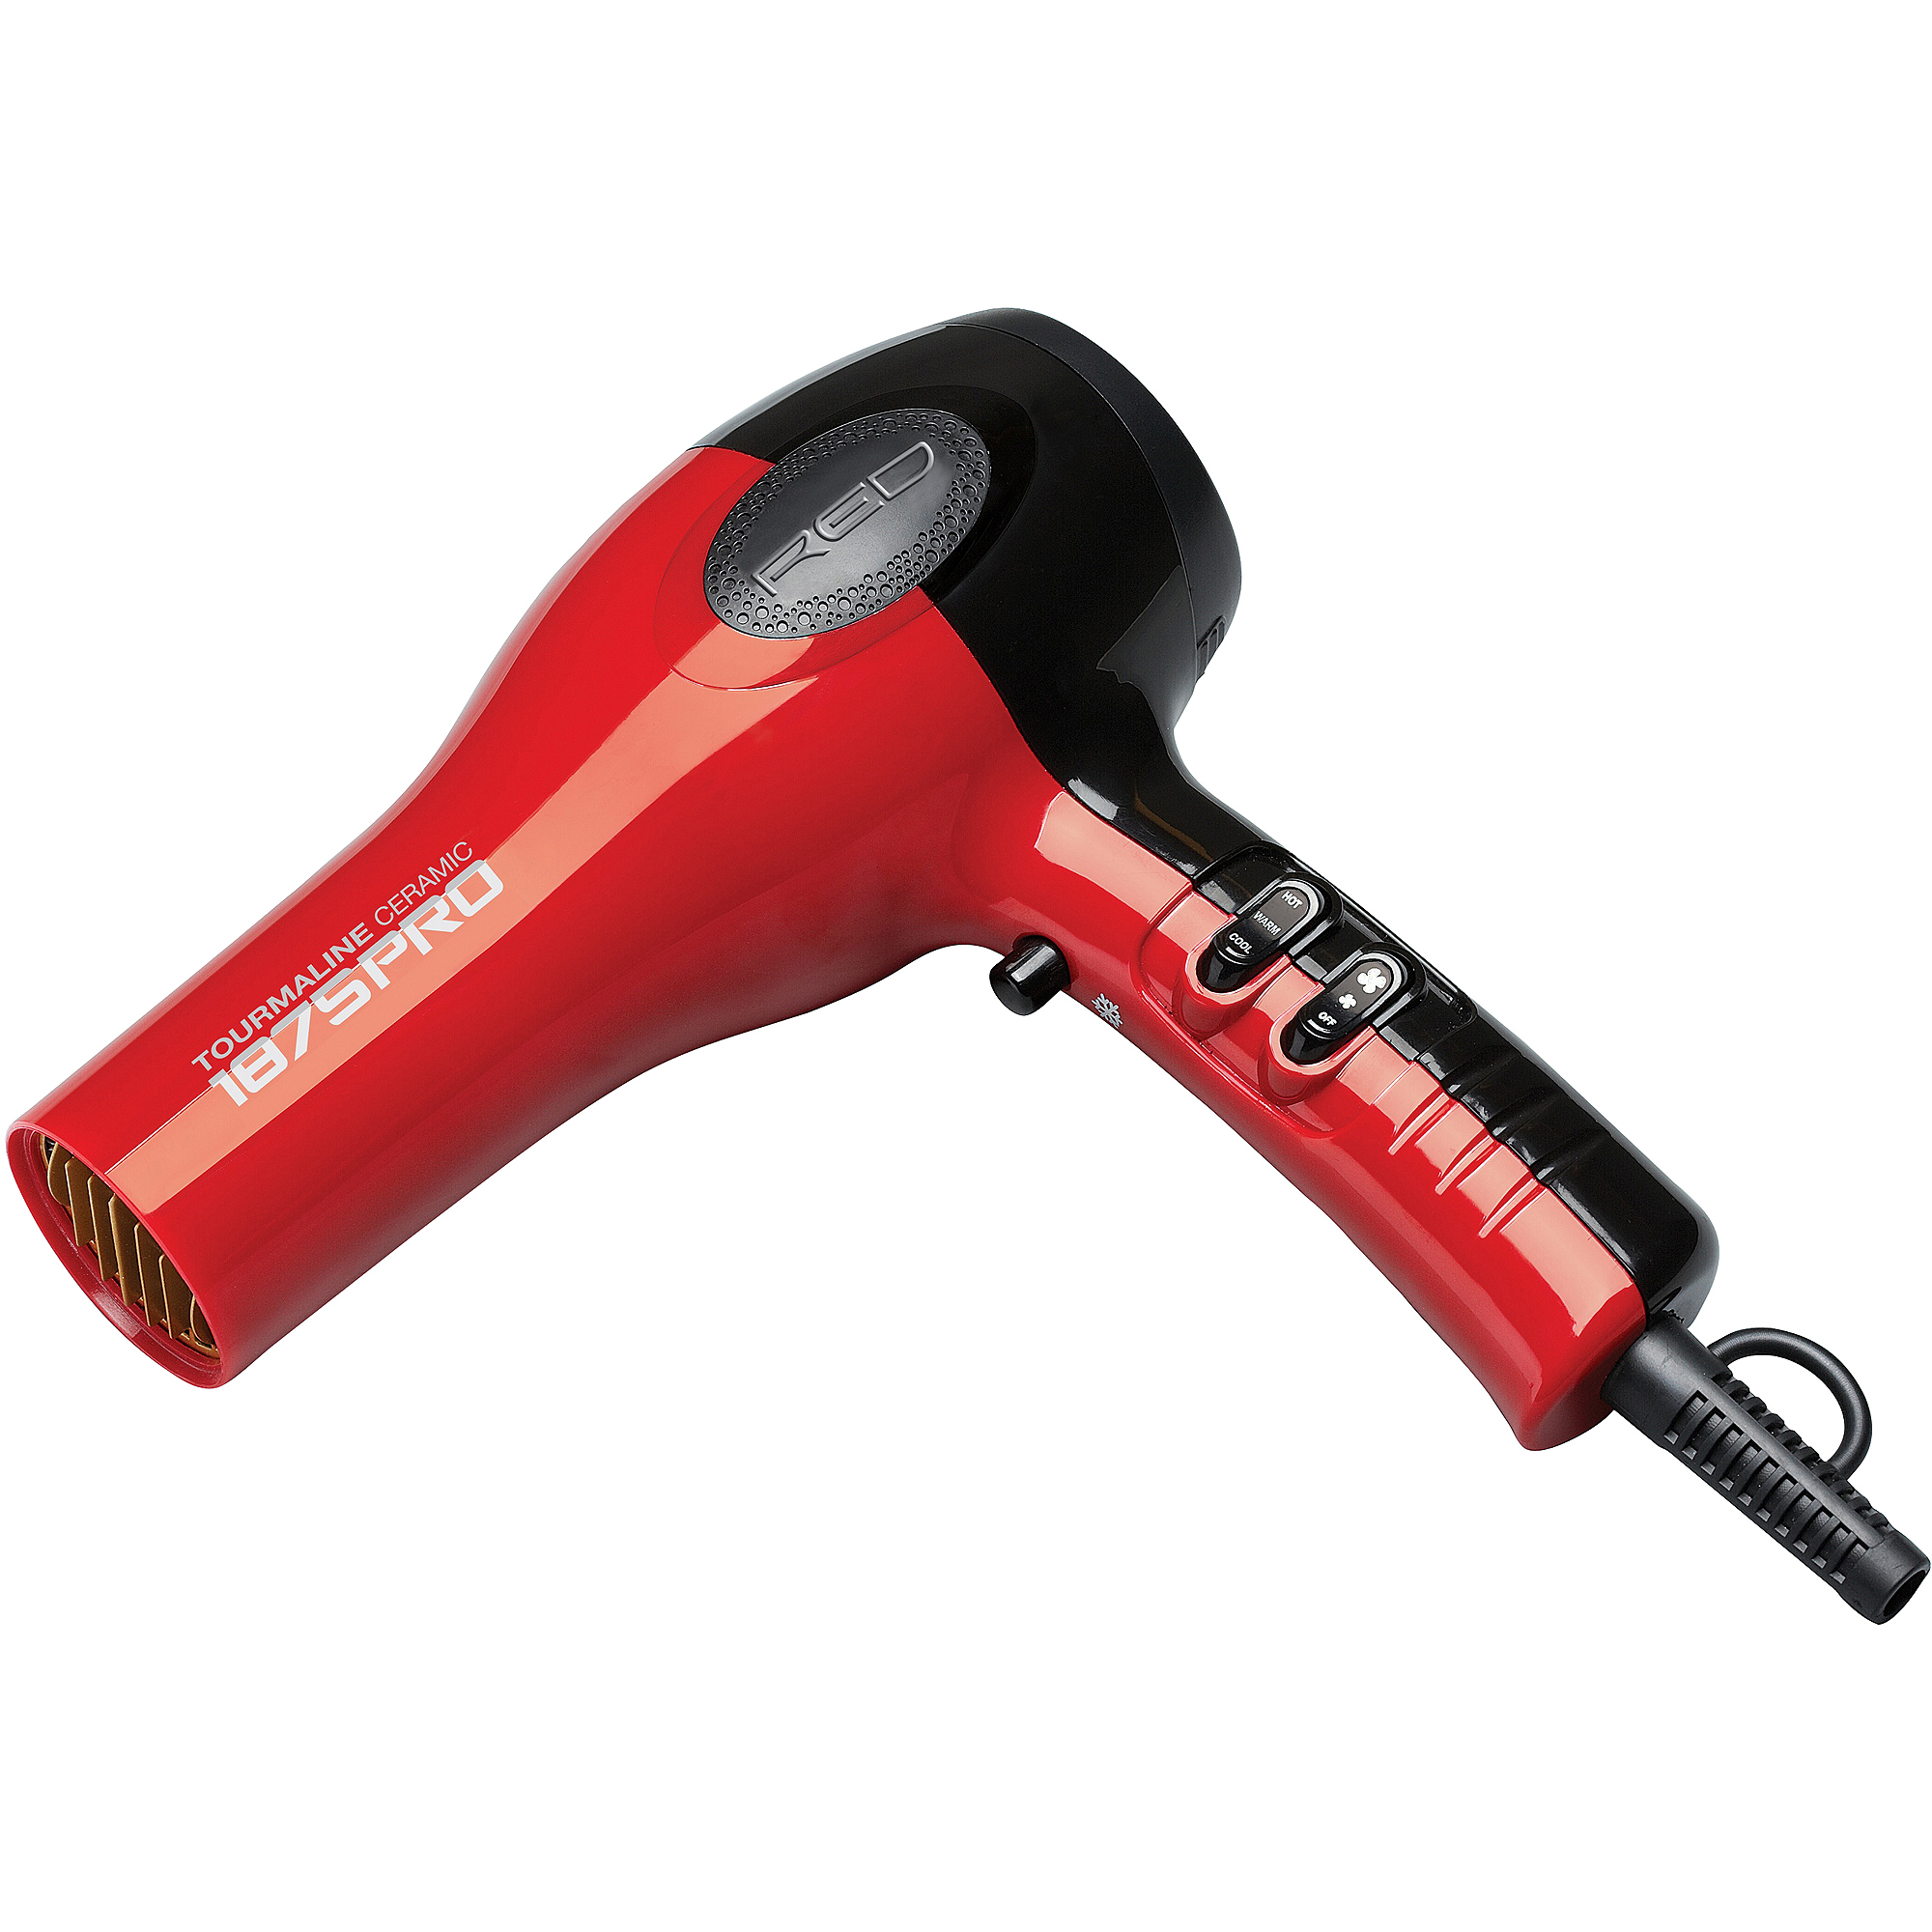 Red 1875 Pro Tourmaline Ceramic Blow Dryer with Pik Attachments